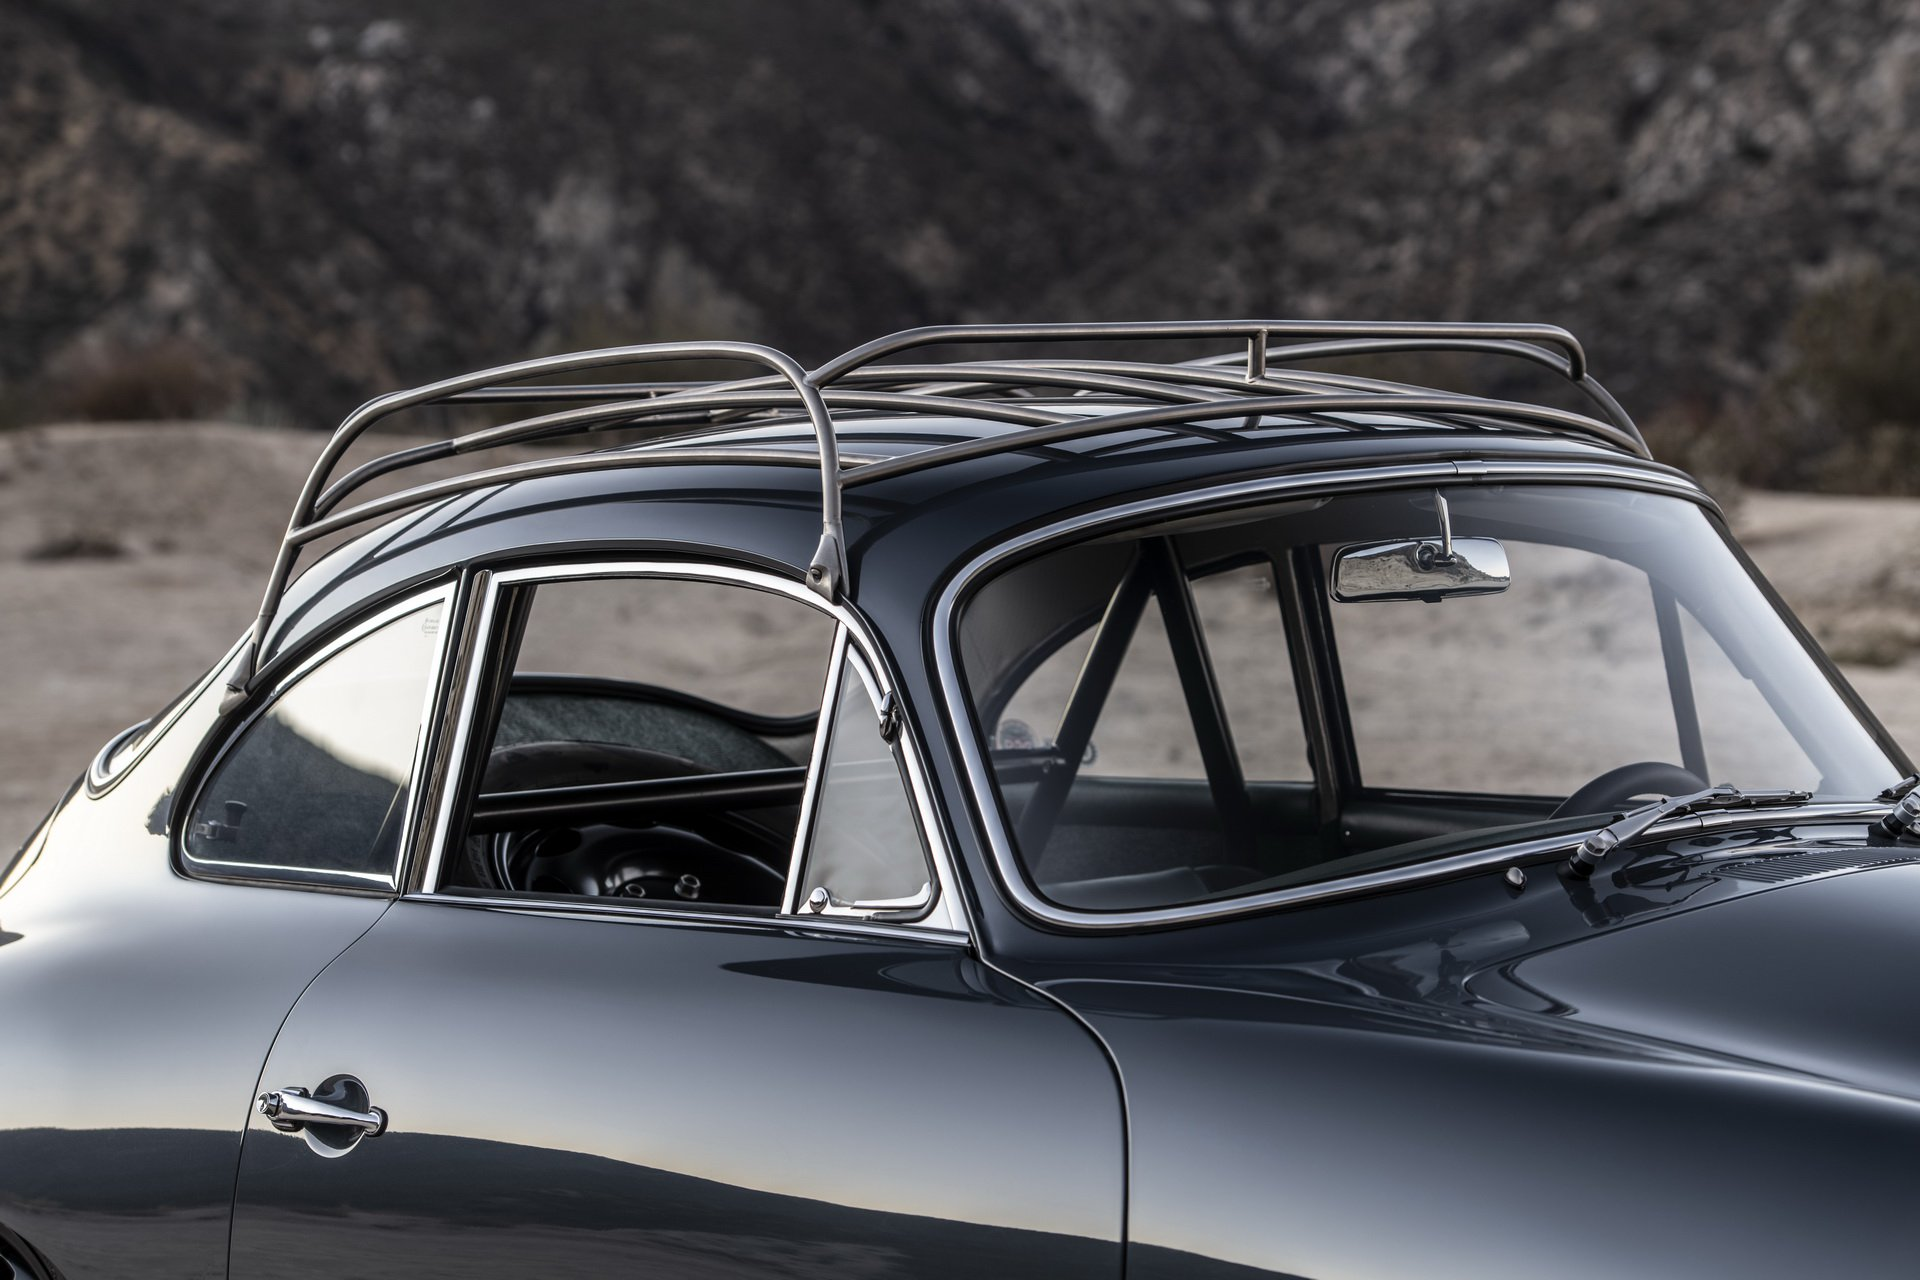 AWD Porsche 356 Coupe by Emory Motorsports (65)